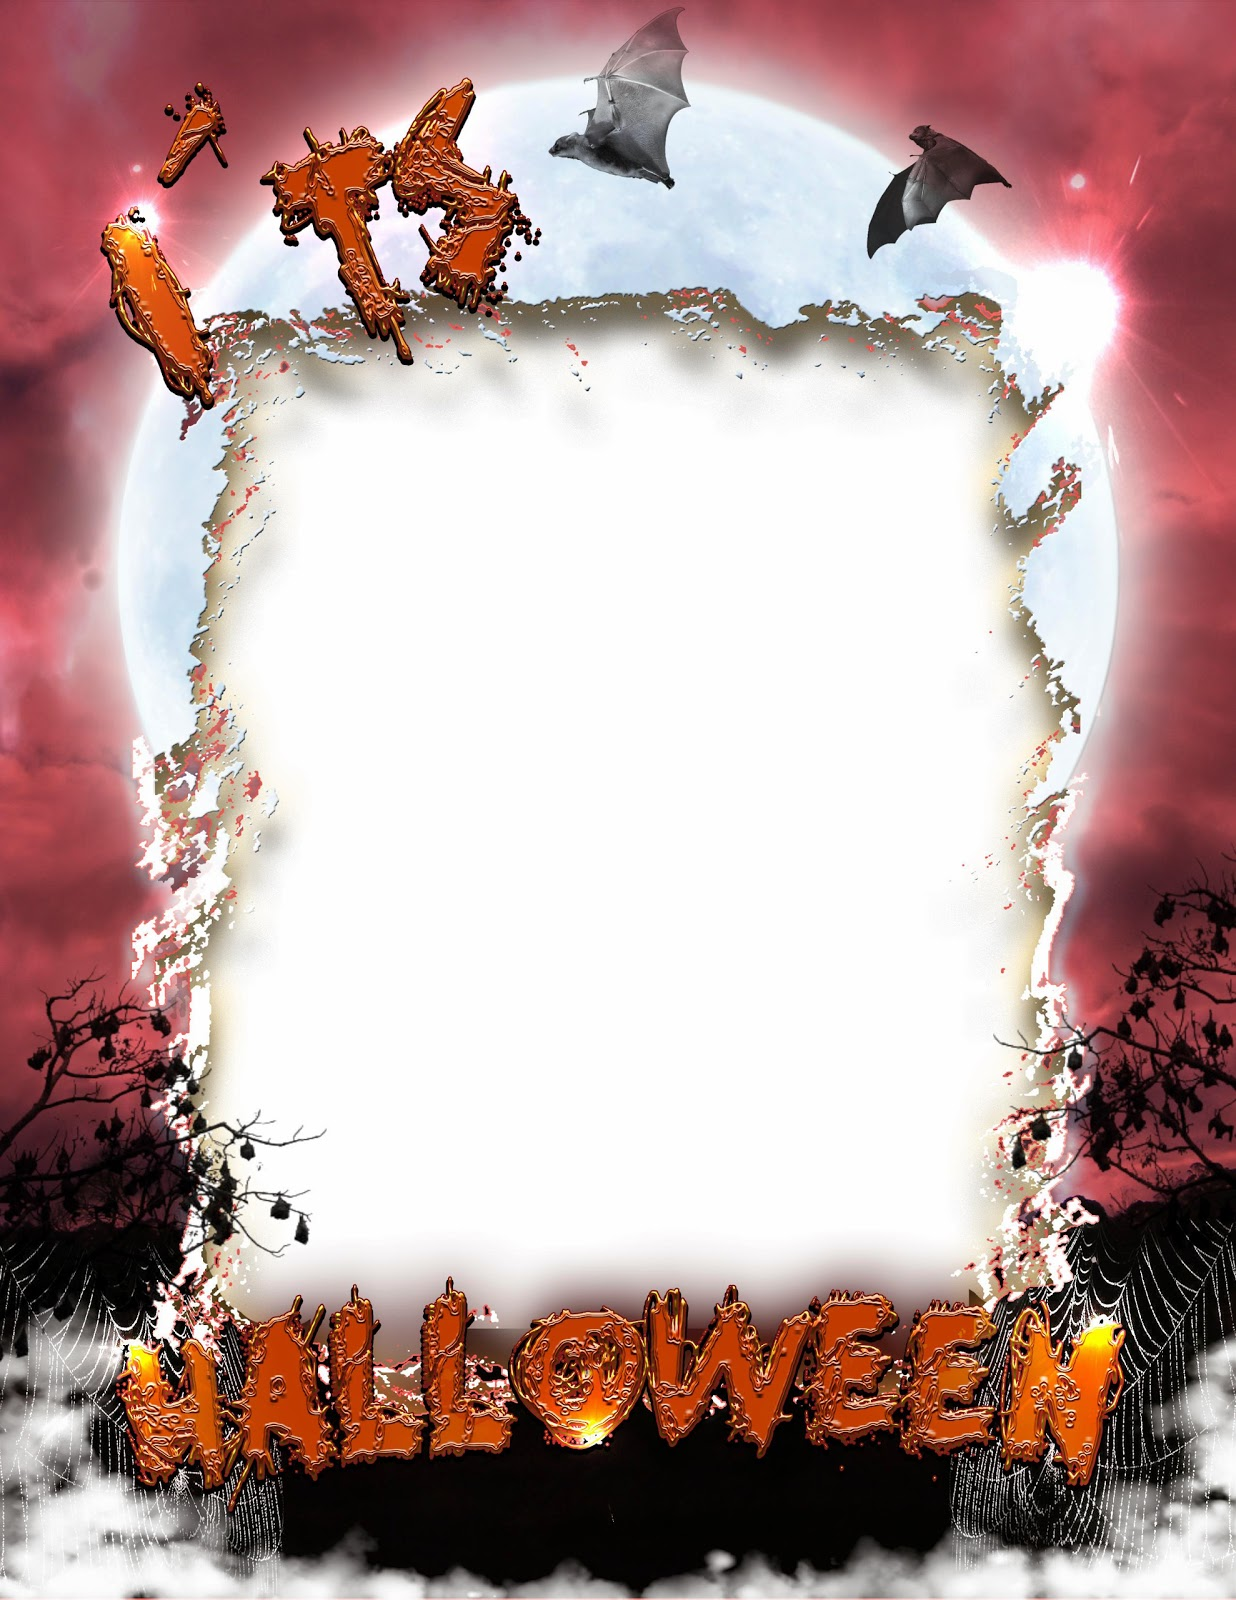 Free Download Frame Halloween Png Images image #31345